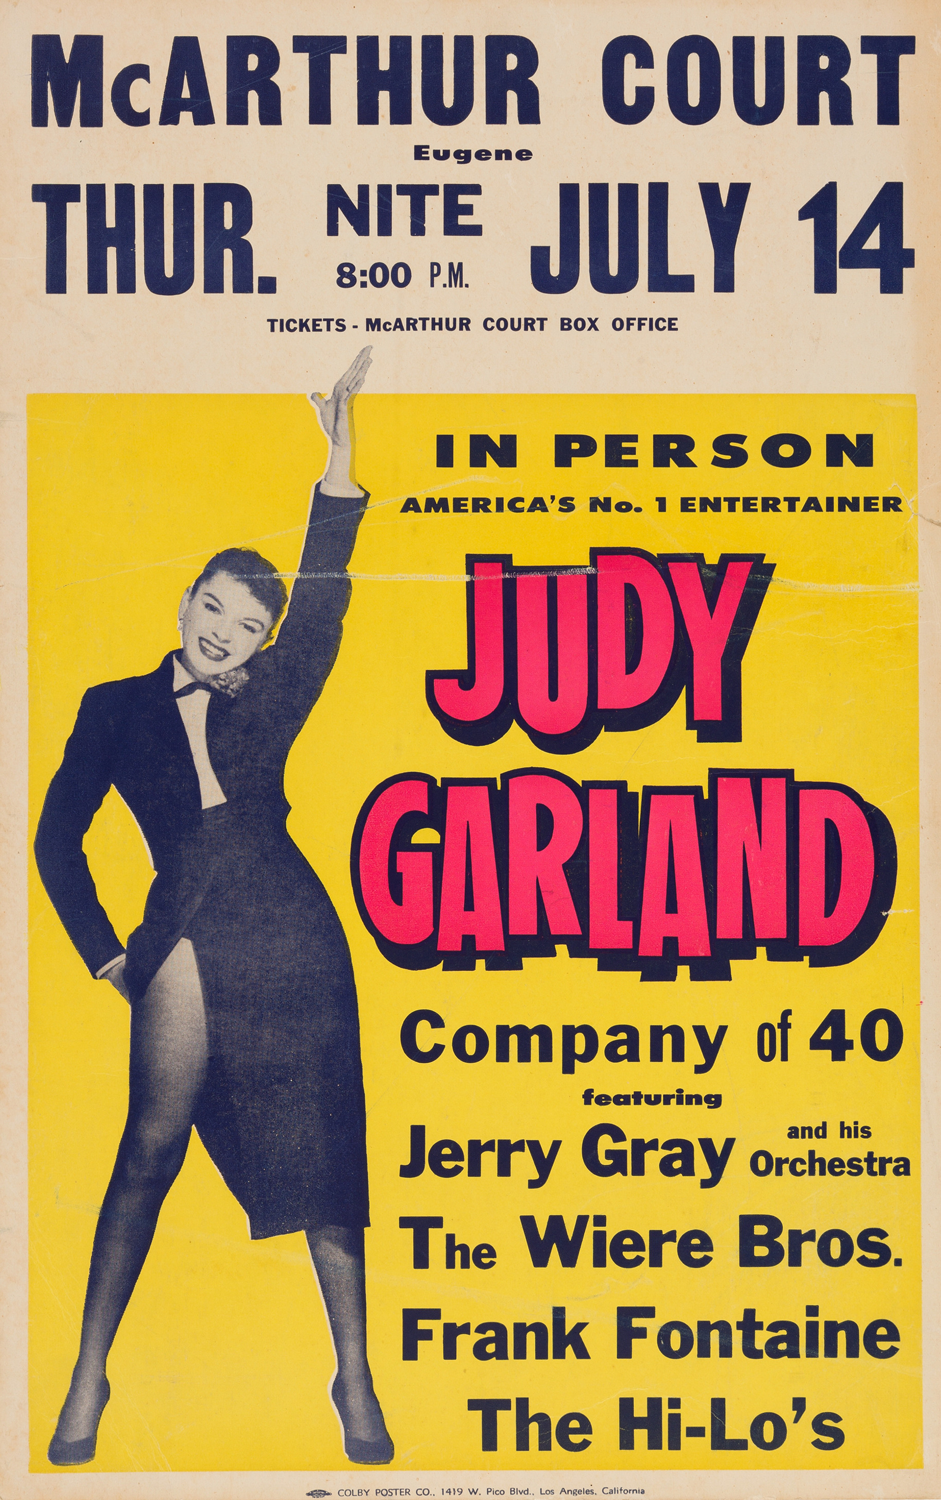 Judy Garland at McArthur Court